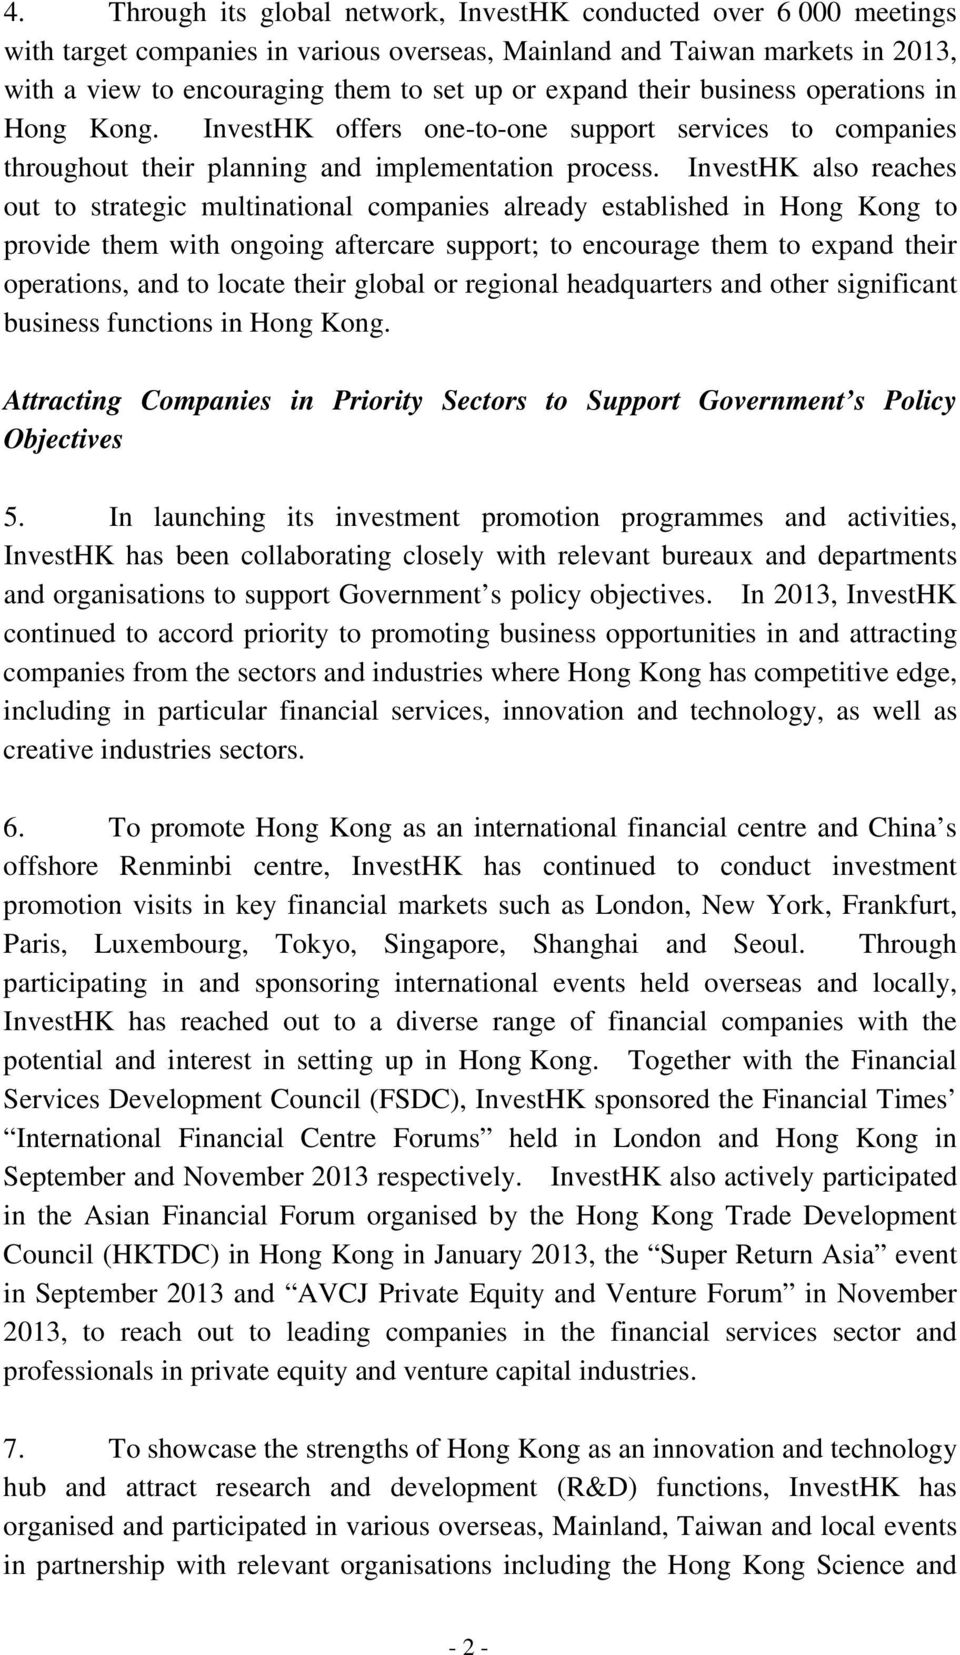 InvestHK also reaches out to strategic multinational companies already established in Hong Kong to provide them with ongoing aftercare support; to encourage them to expand their operations, and to